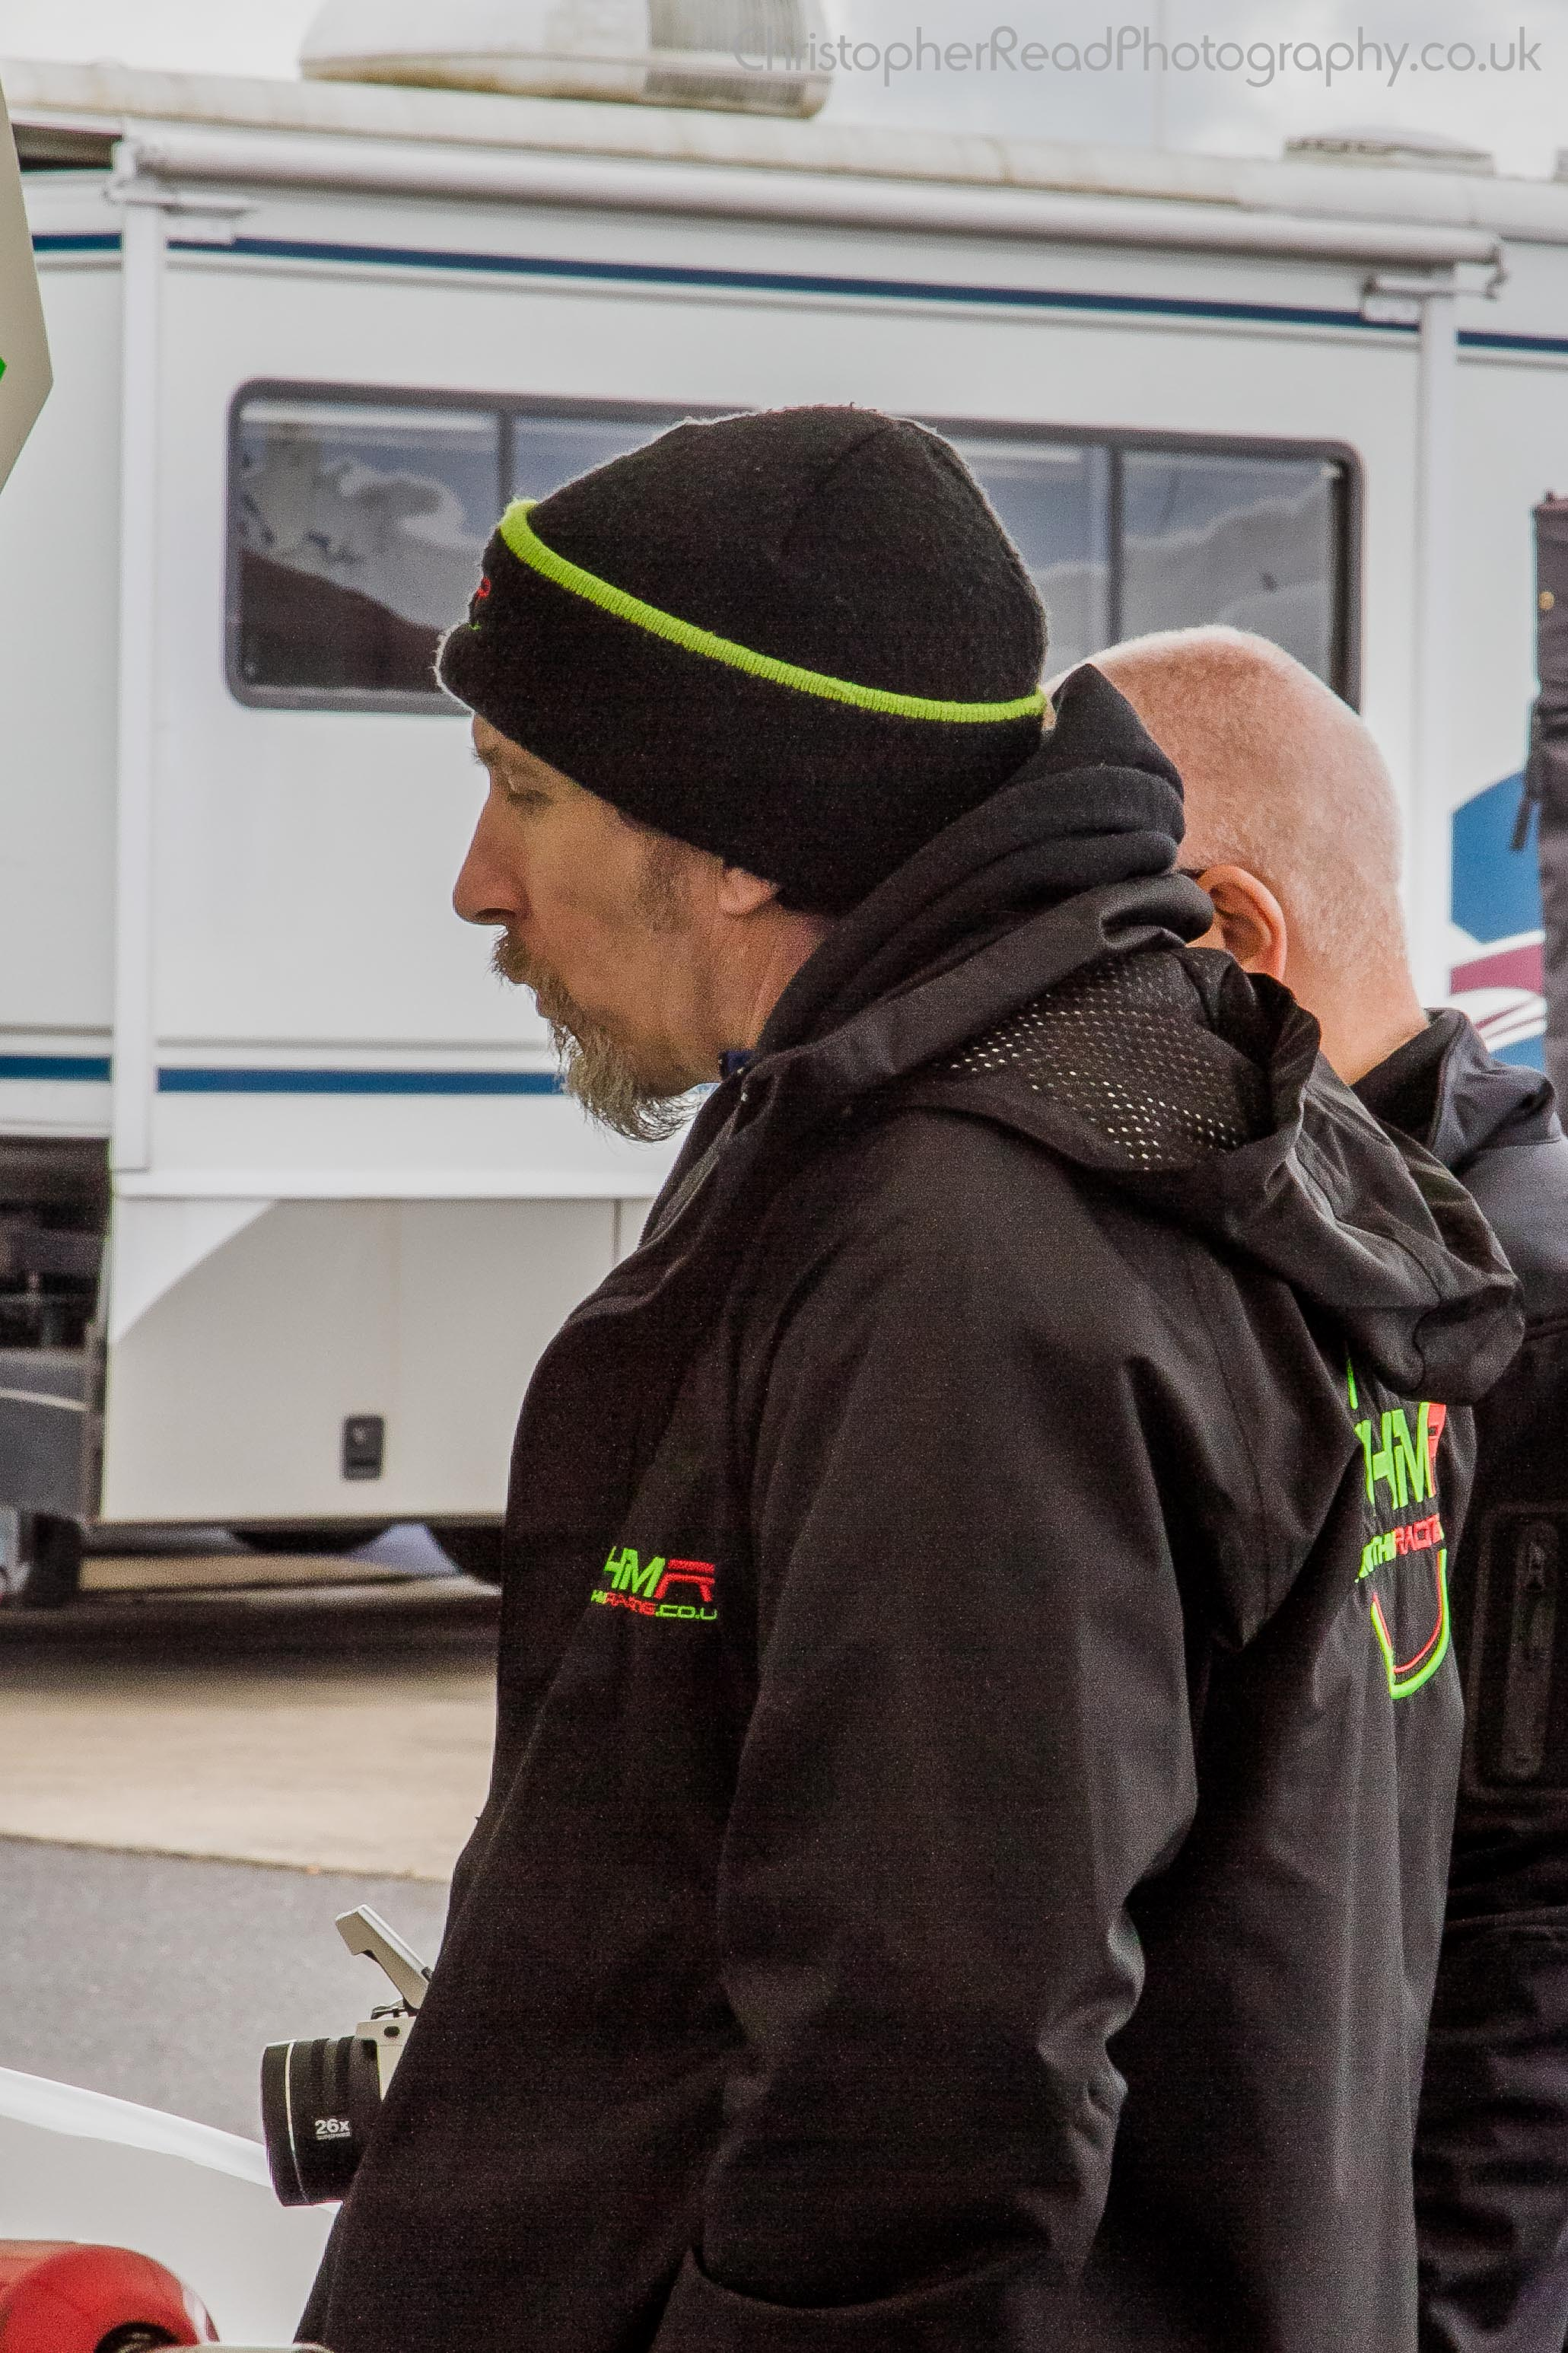 THM Racing - Head of Marketing and PR, Dale Cullen, looking on